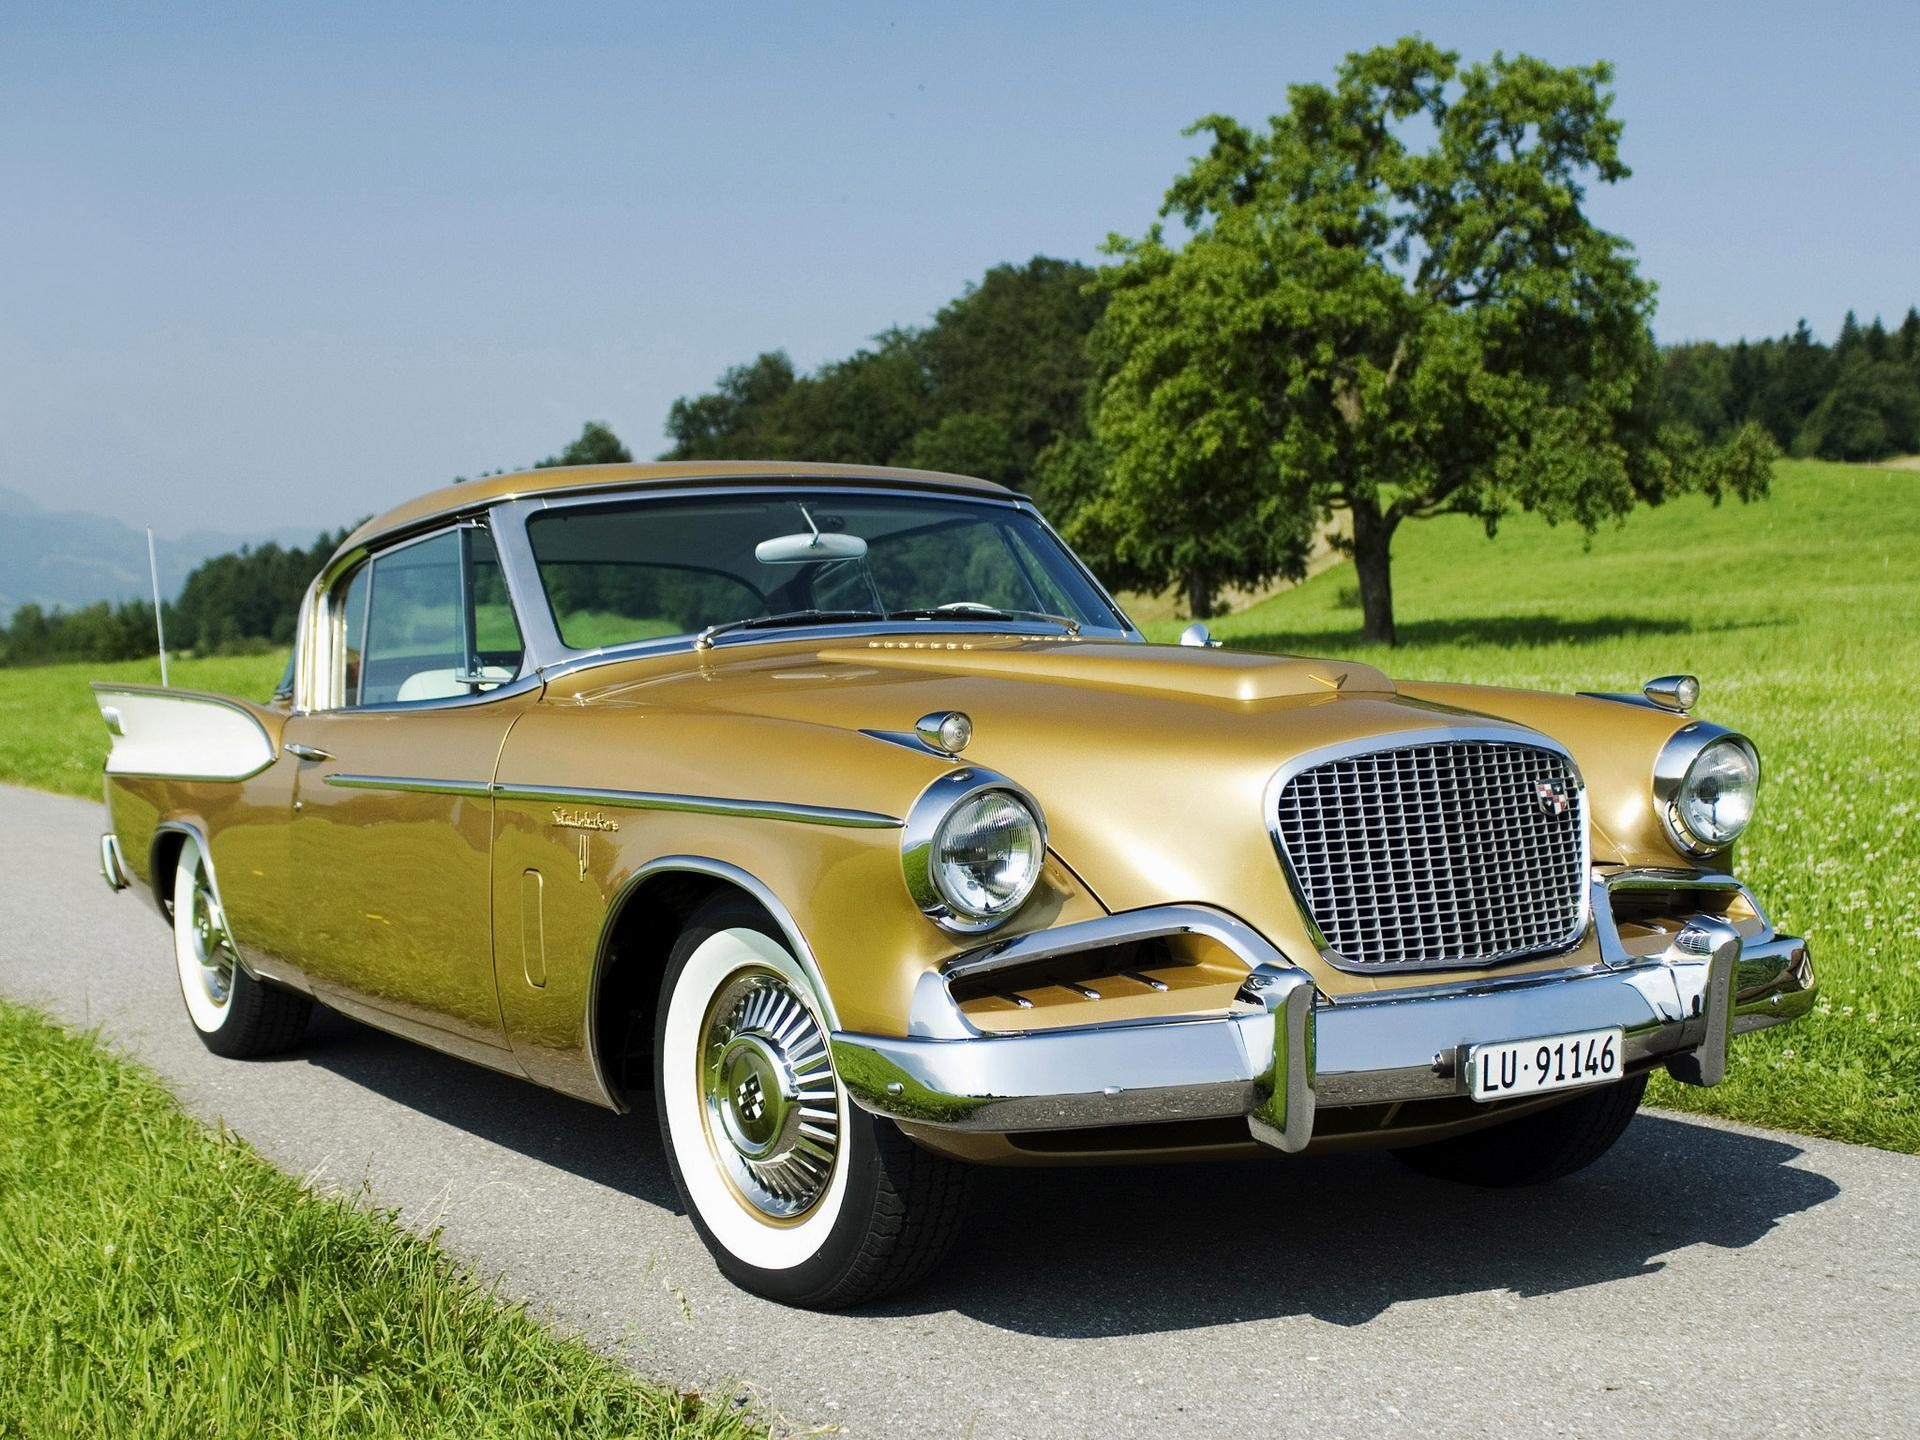 Res: 1920x1440, Studebaker Silver Hawk Wallpaper HD